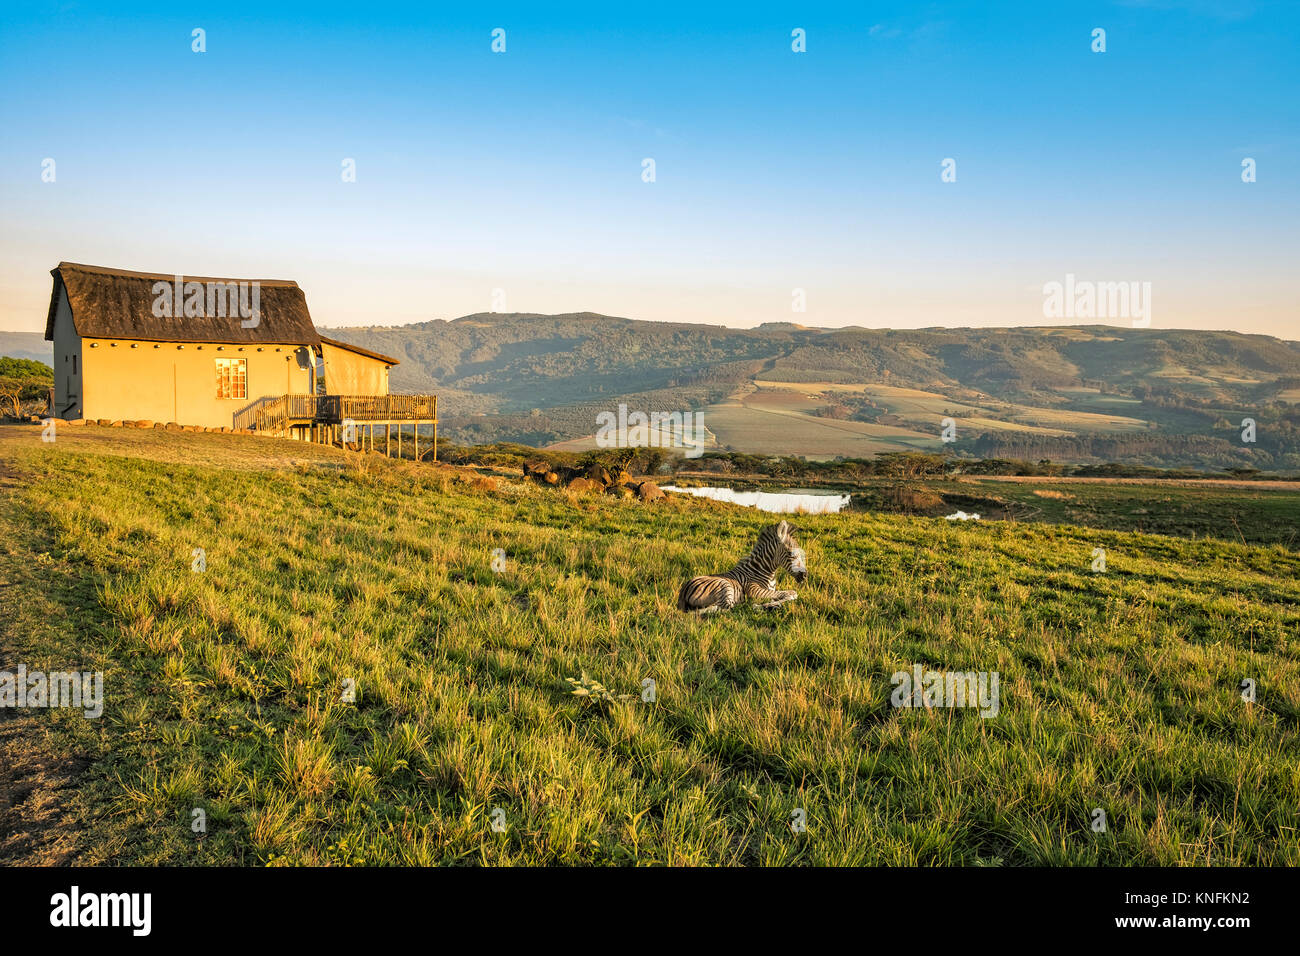 Picturesquely situated lodge in the Drakensberg mountains, South Africa. The center of the photo shows a baby zebra - Stock Image